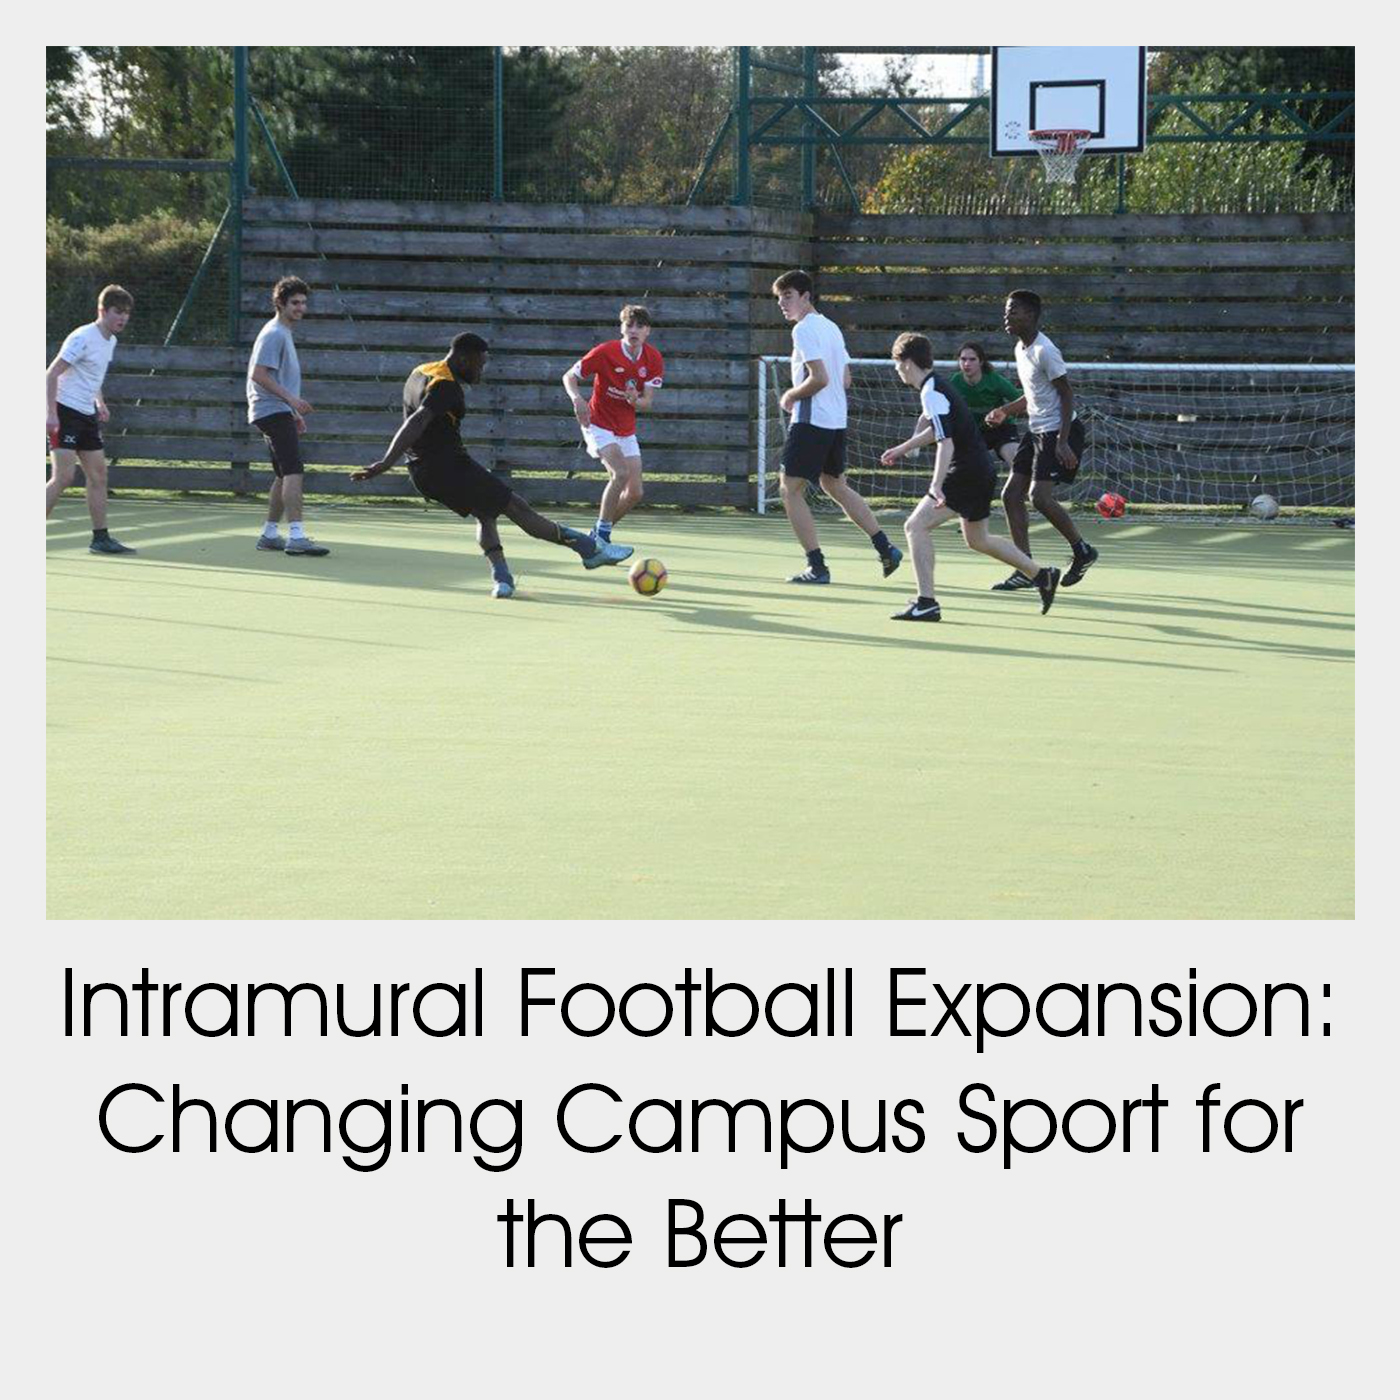 Intramural Football Expansion